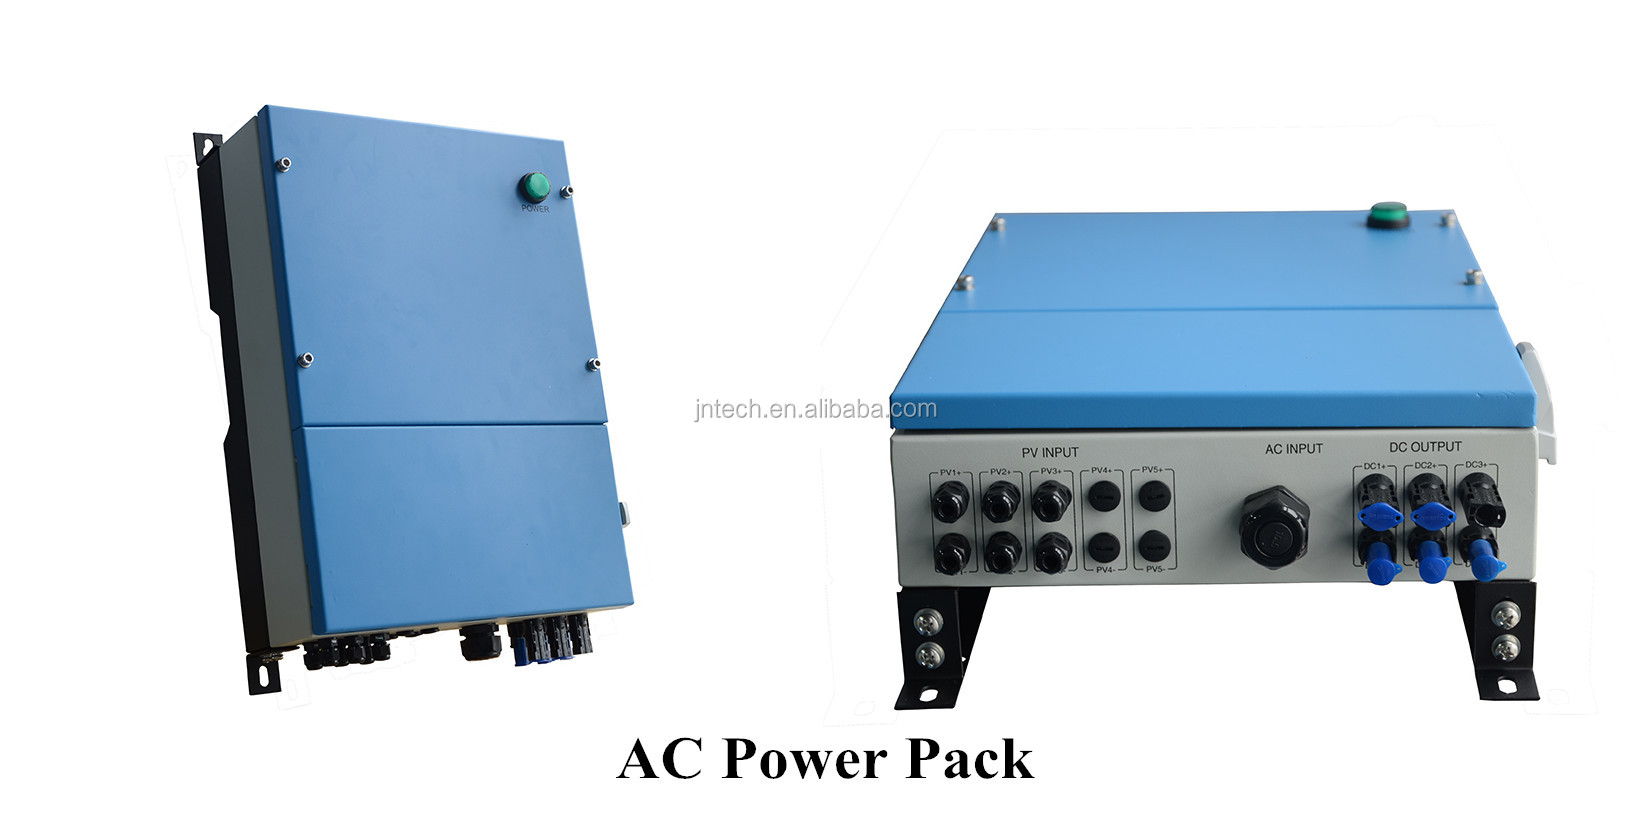 AC power pack_.jpg